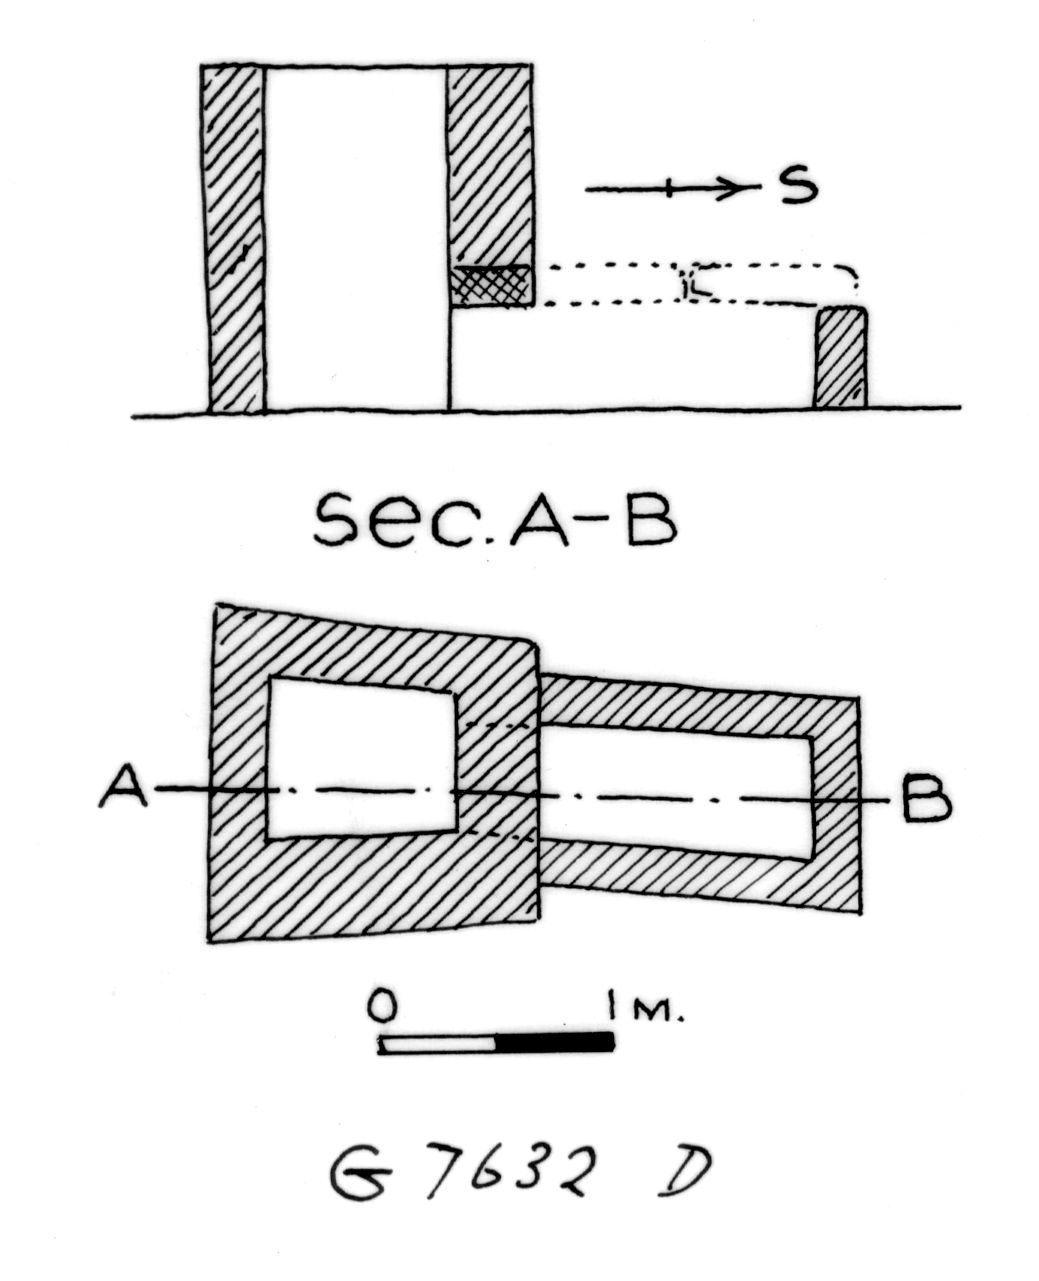 Maps and plans: G 7632, Shaft D